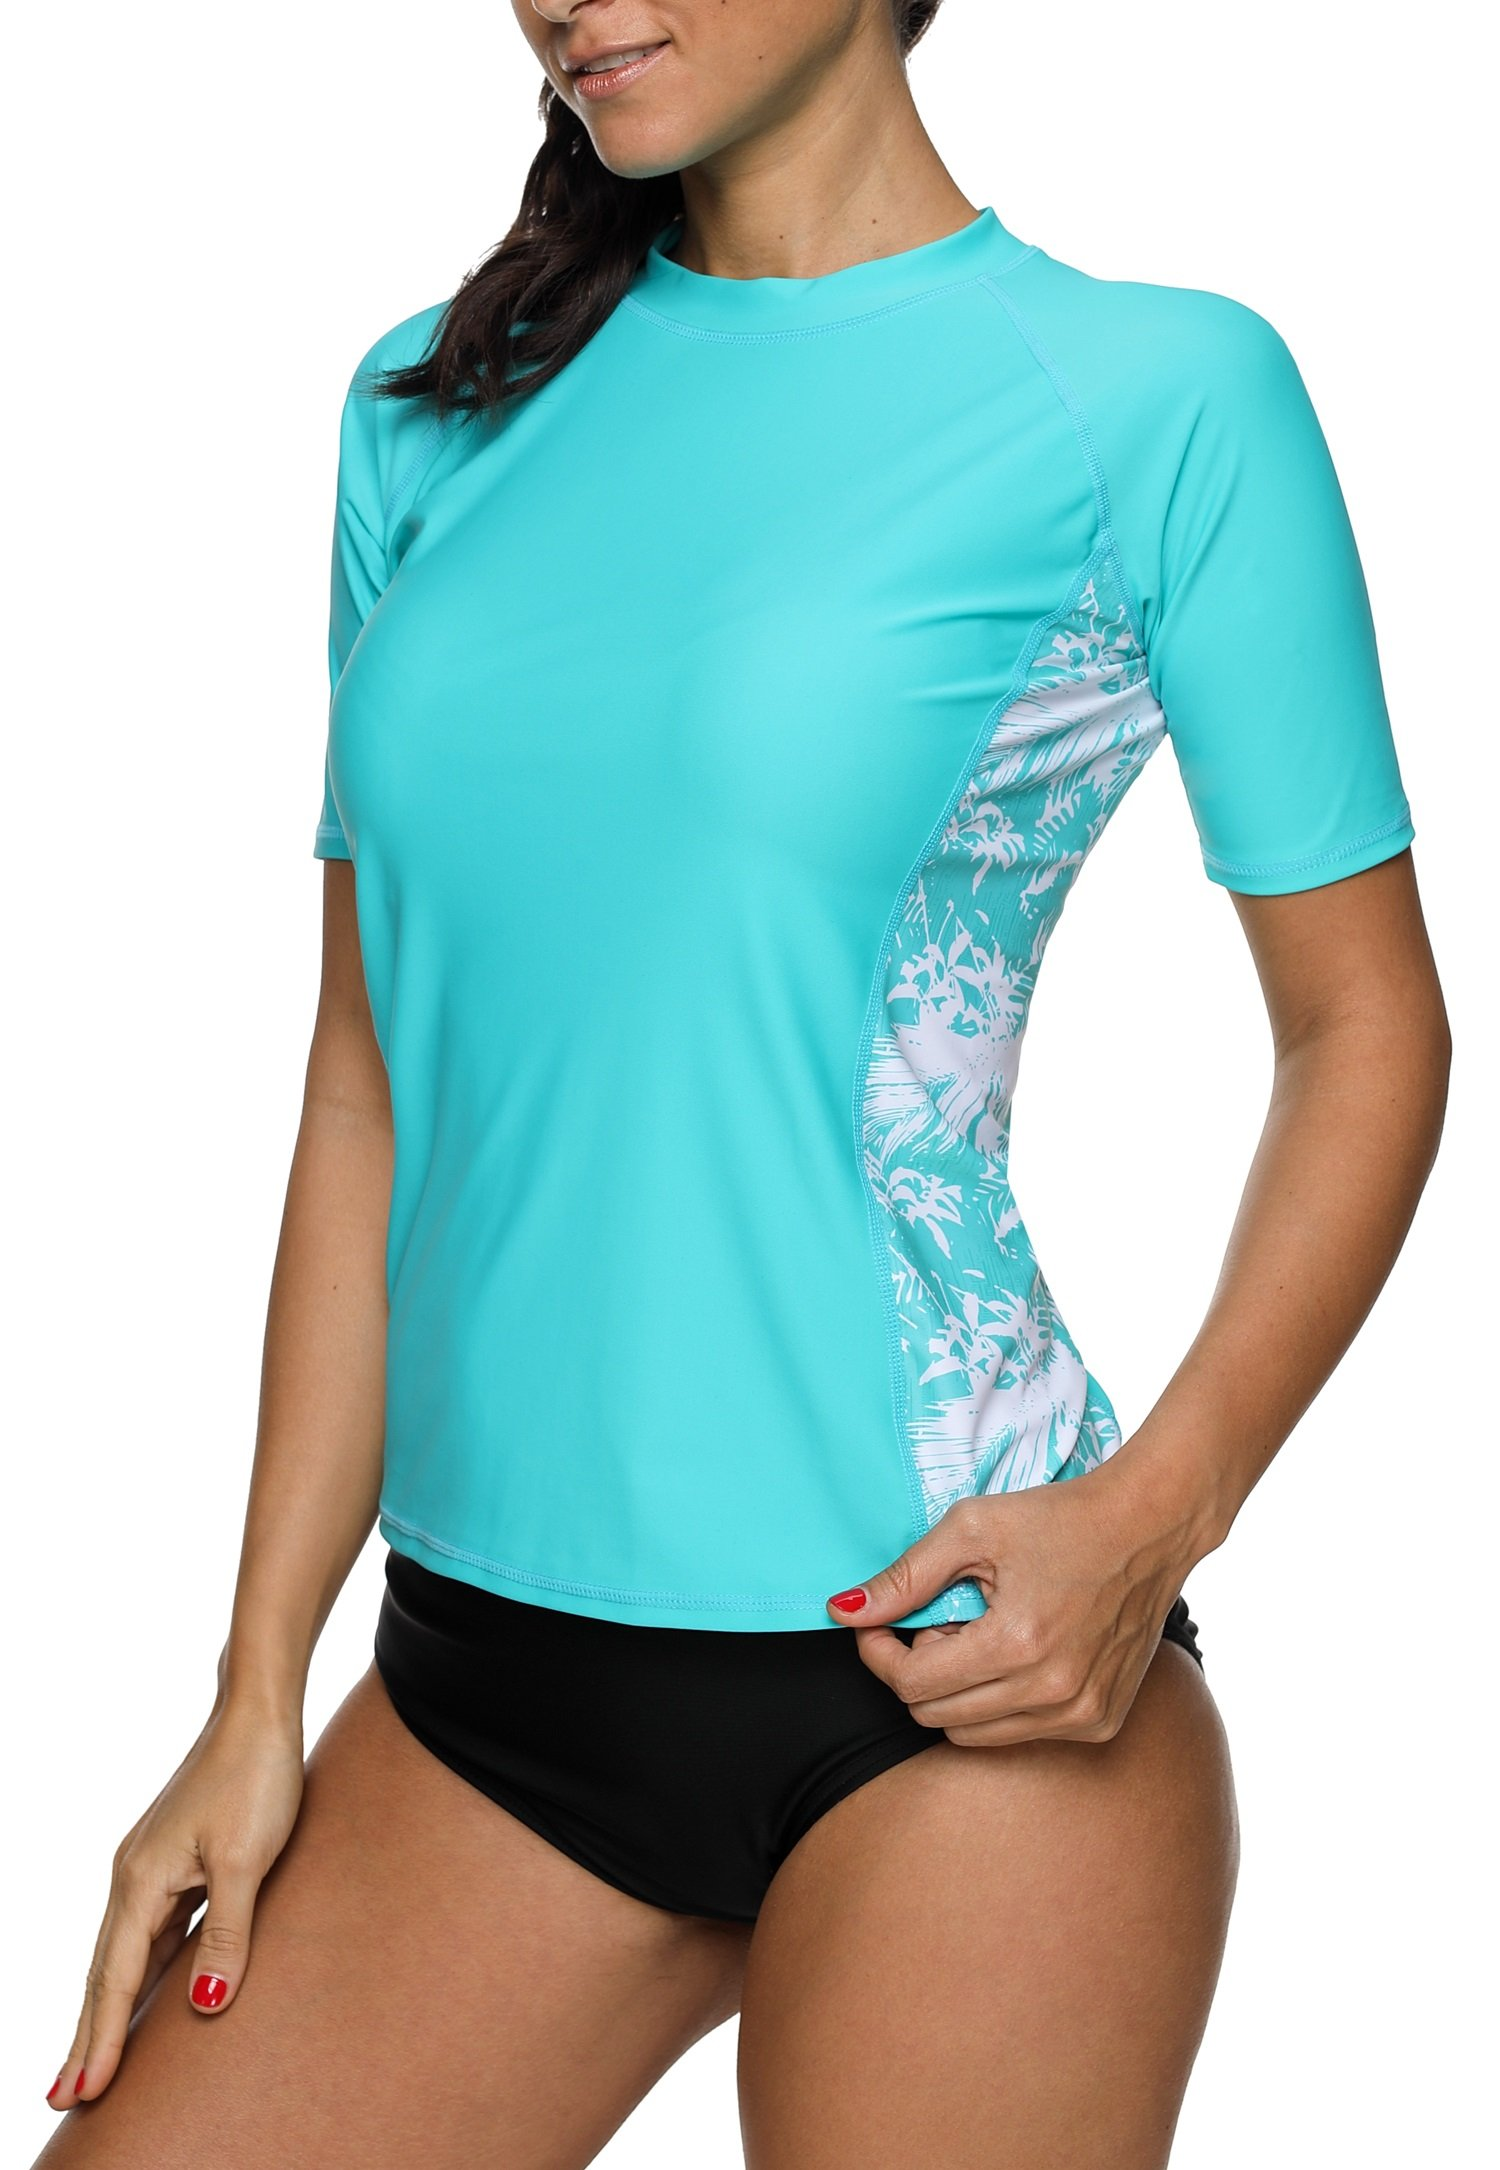 ATTRACO Woman Floral Rash Guard Swimwear Sporty Swim Shirt Aqua Large